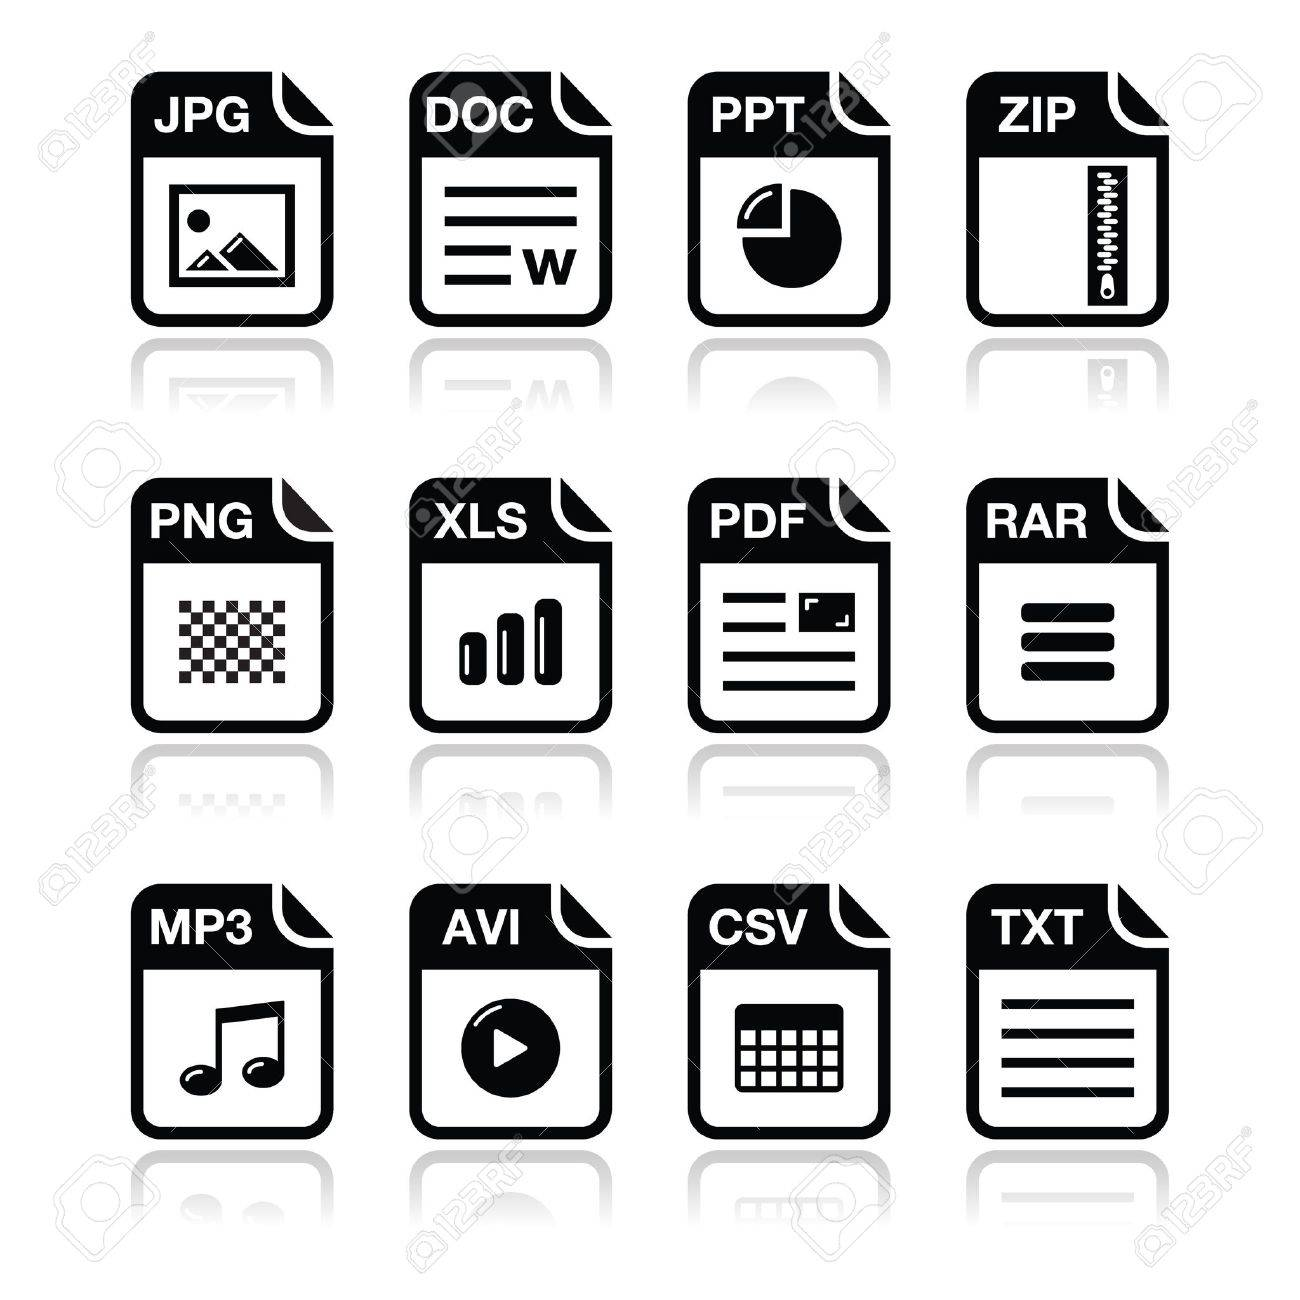 File type black icons with shadow set - zip, pdf, jpg, doc Stock Vector - 15030203